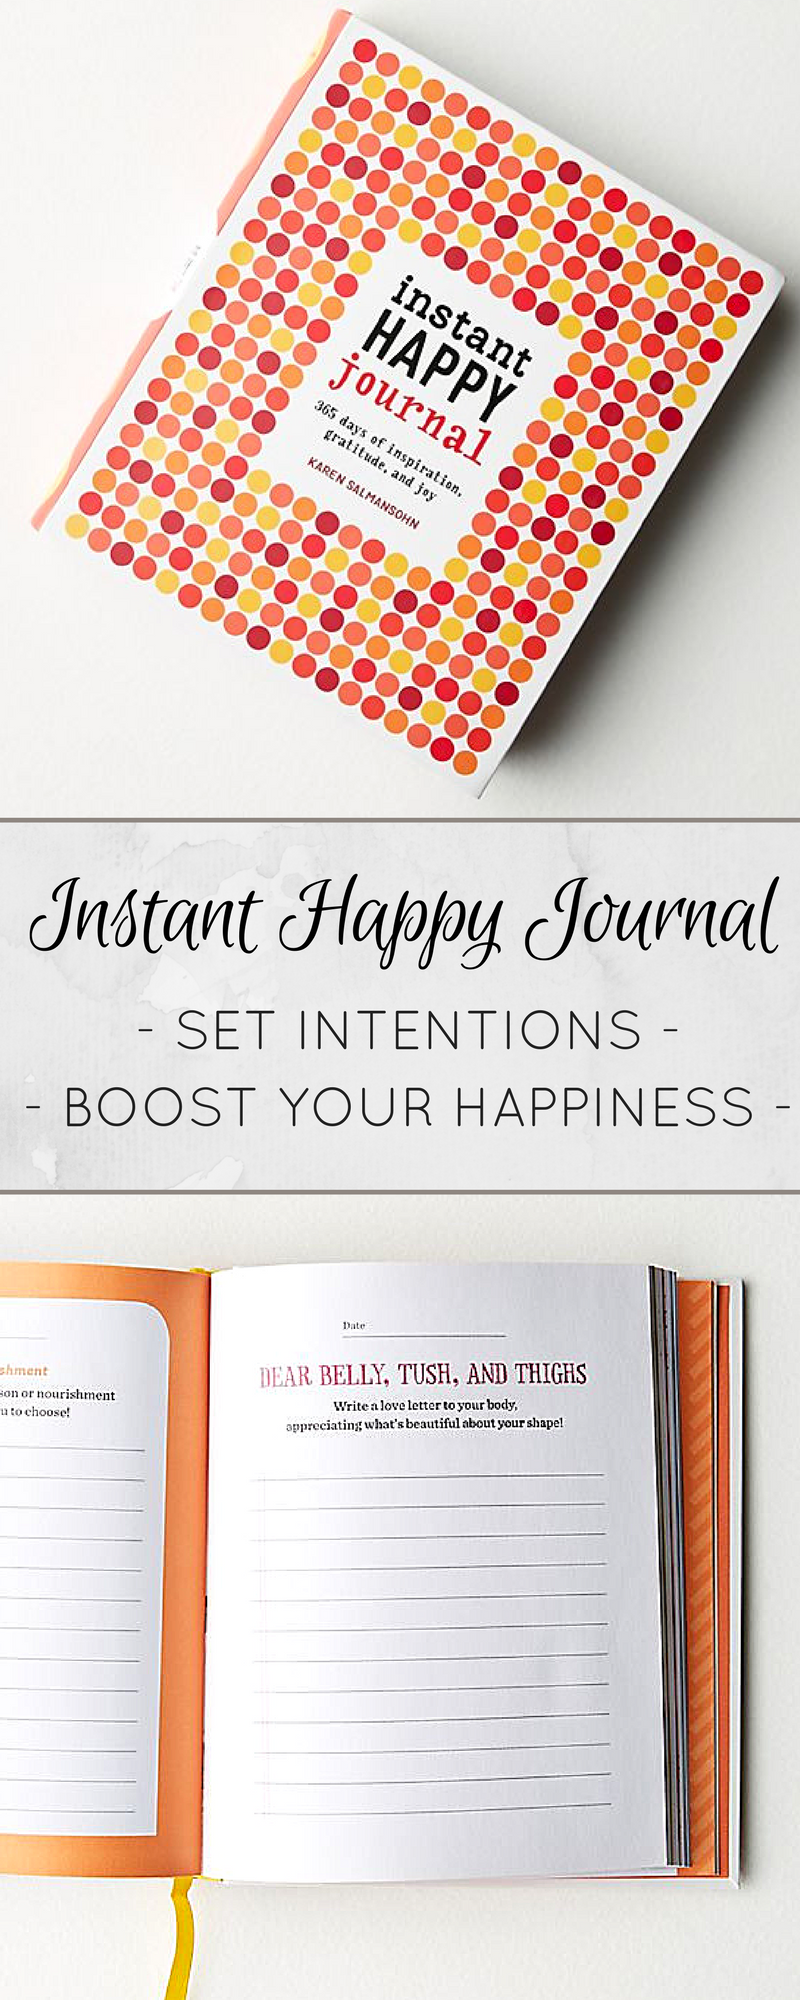 Instant Happy Journal With Inspirational Quotes For Every Day Of The